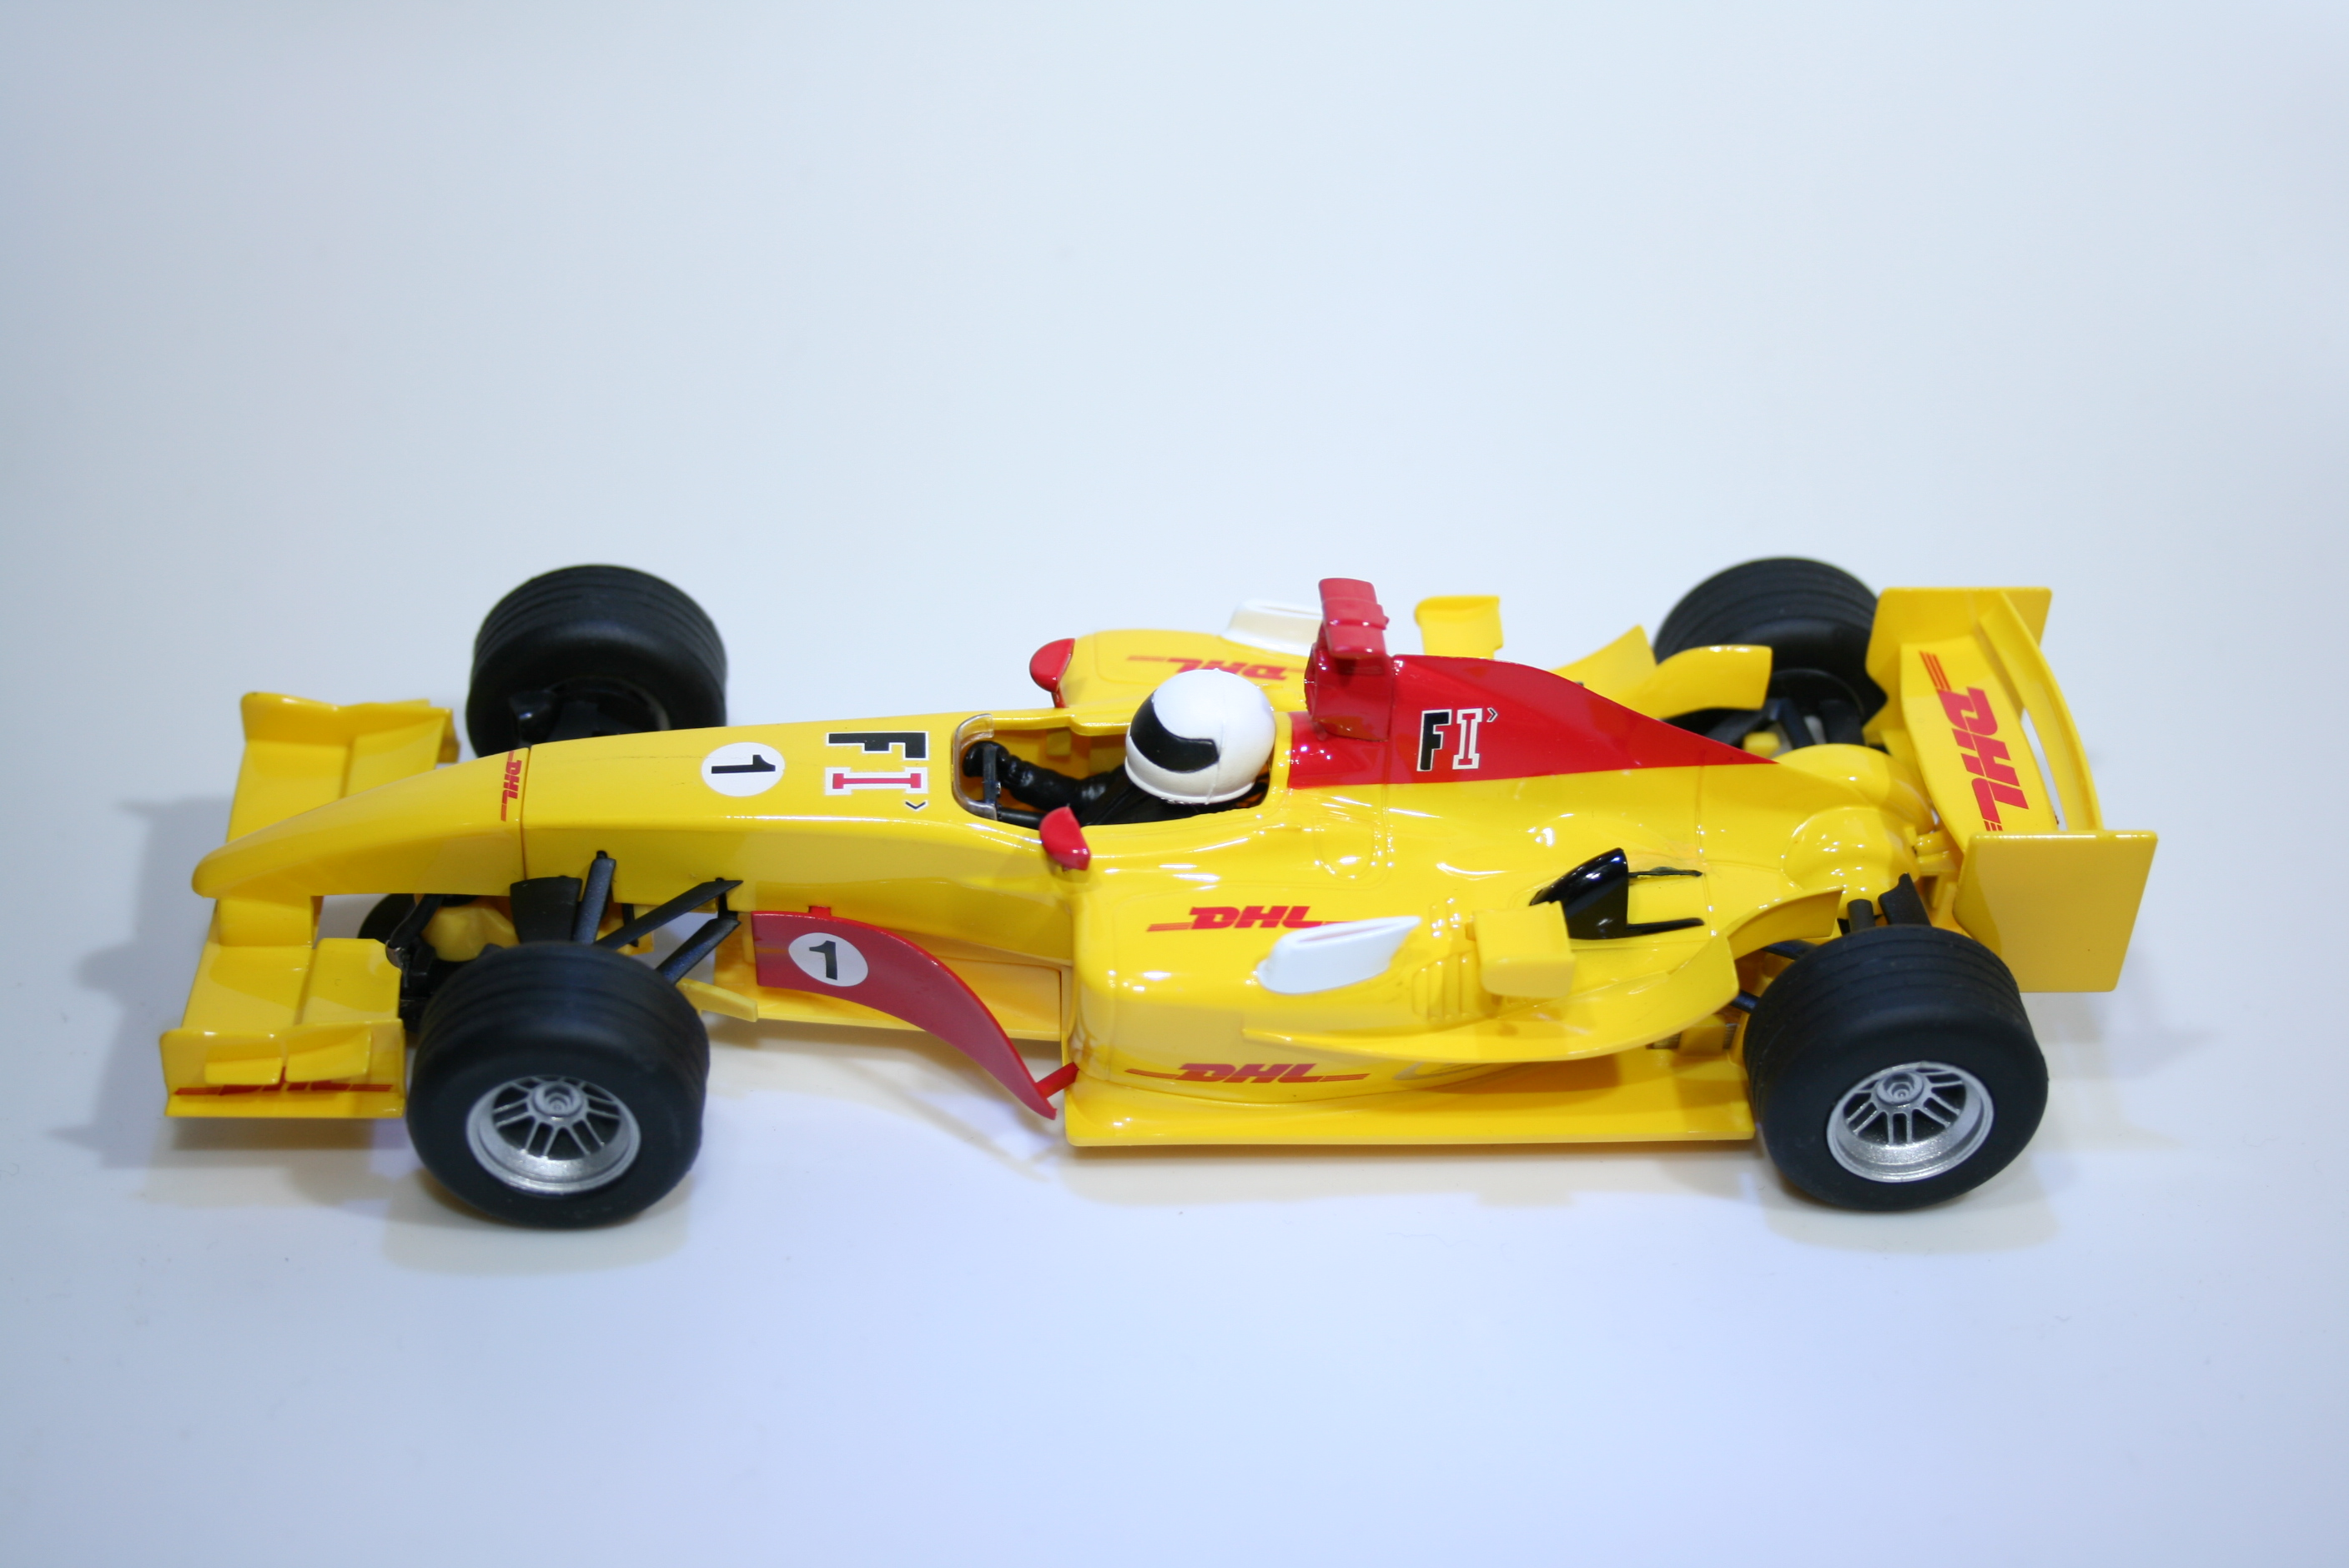 907 Renault R27 Monoplaza F1 Scalextric H2948B Boxed